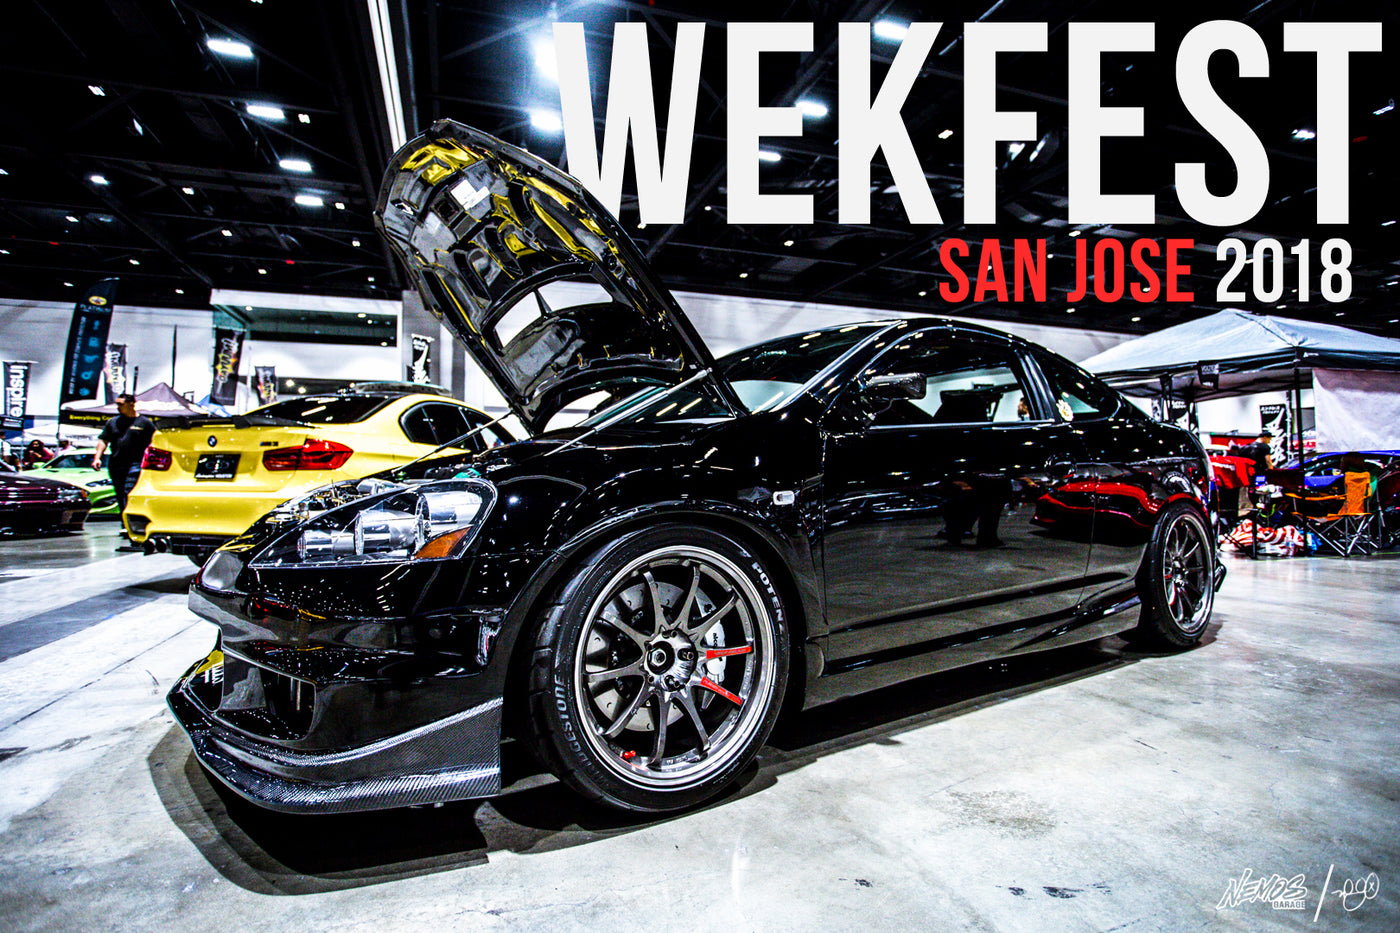 Wekfest San Jose 2018 Coverage - Nemos-Garage.com on livestock sale, grage sale, crazy sale, fashion sale, zumo sale, car sale, apartment sale, used items sale, junk sale, street sale, warehouse sale, carport sale, one day sale, store sale, bake sale, barn sale, land sale, boat sale, tv sale, basement sale,